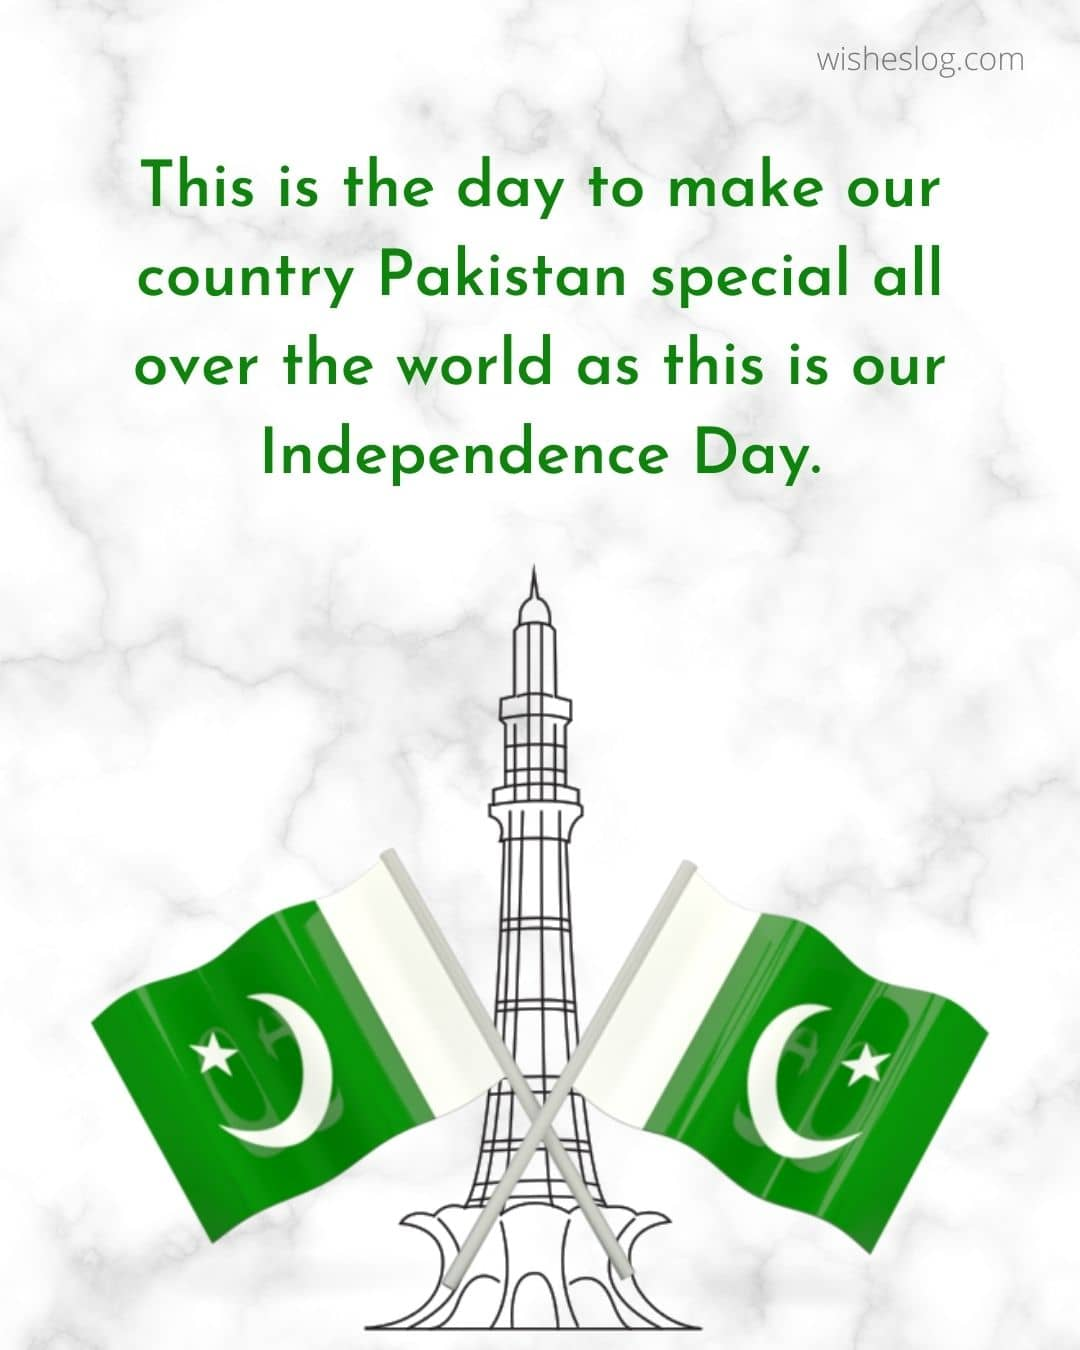 pakistan-independence-day-14